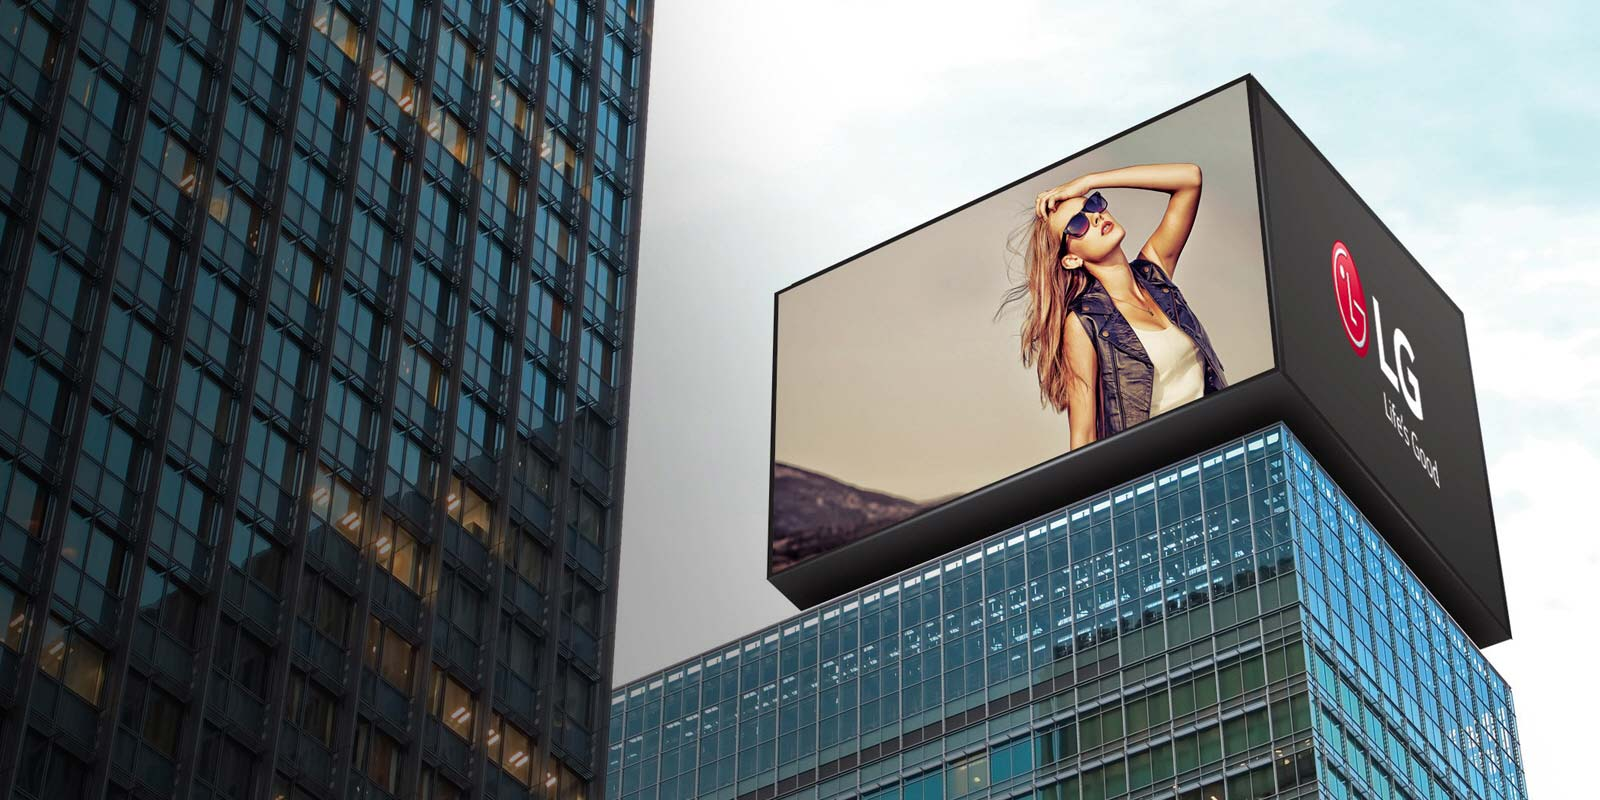 How to choose led screen supplier,led screen factory in china